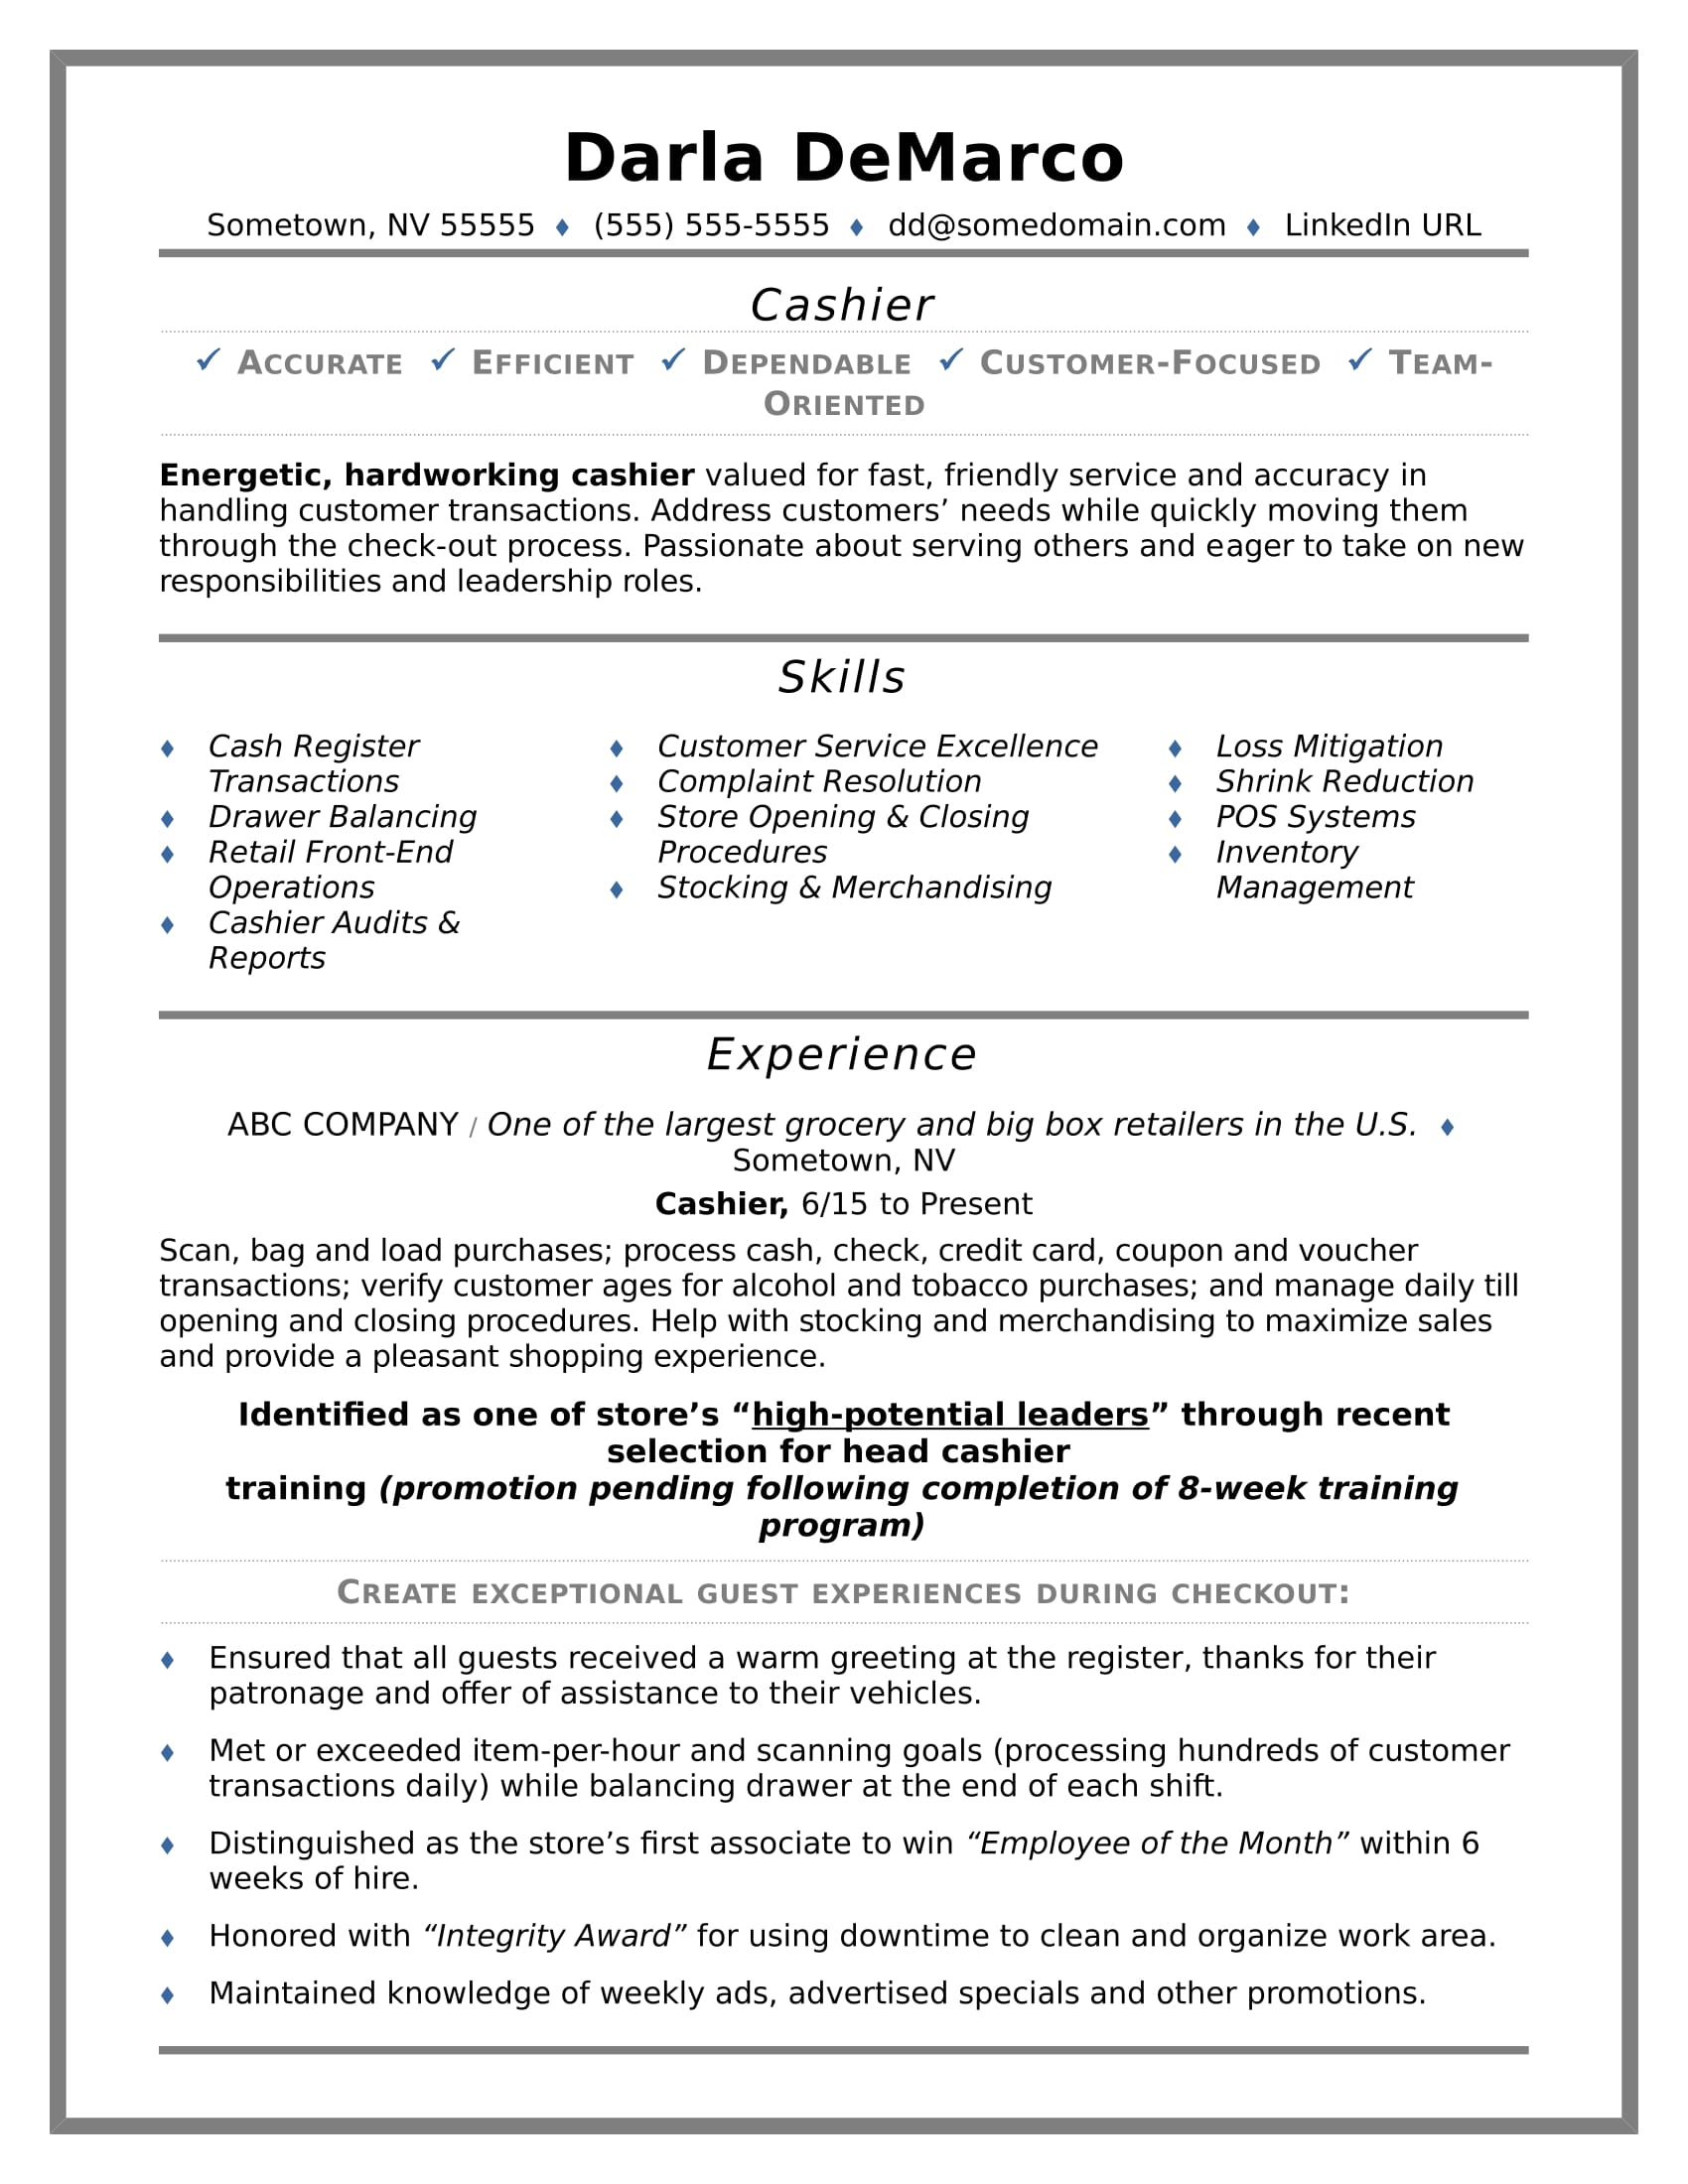 Cashier Resume Sample  Winning Resume Samples